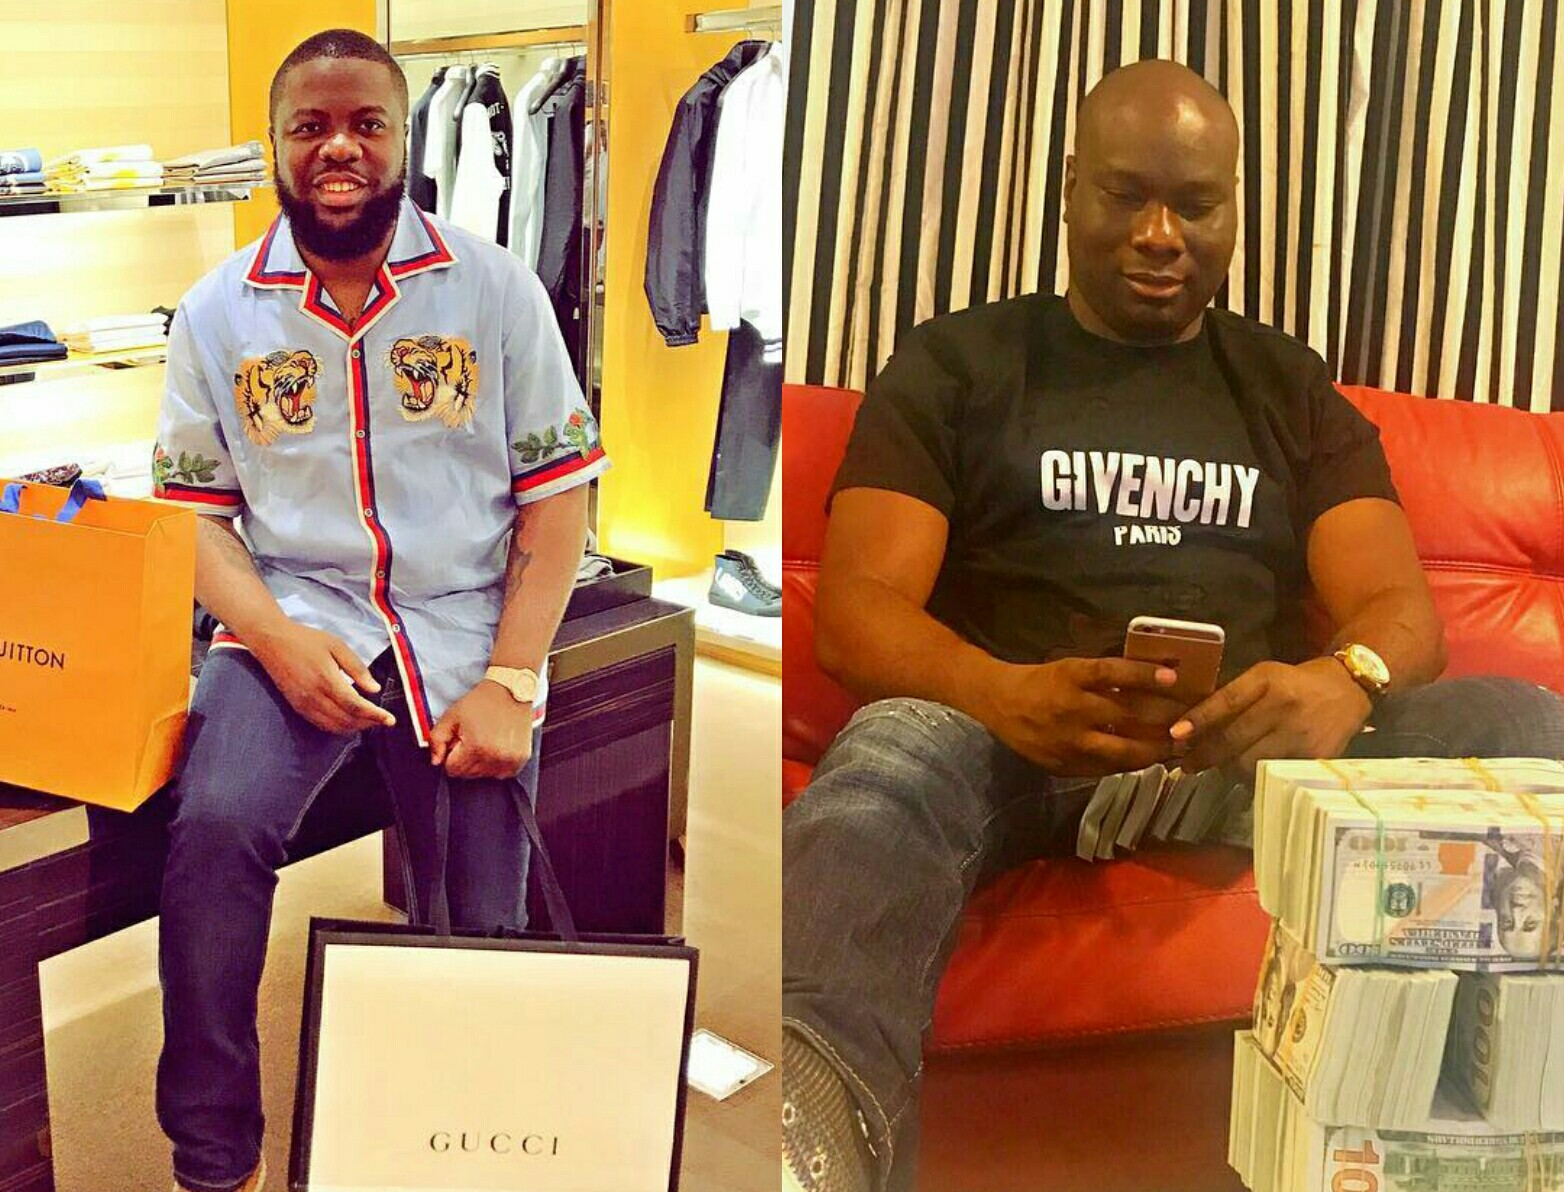 The drama continues! Hushpuppi fires back at Mompha, alleges that he squandered 70m naira given to him